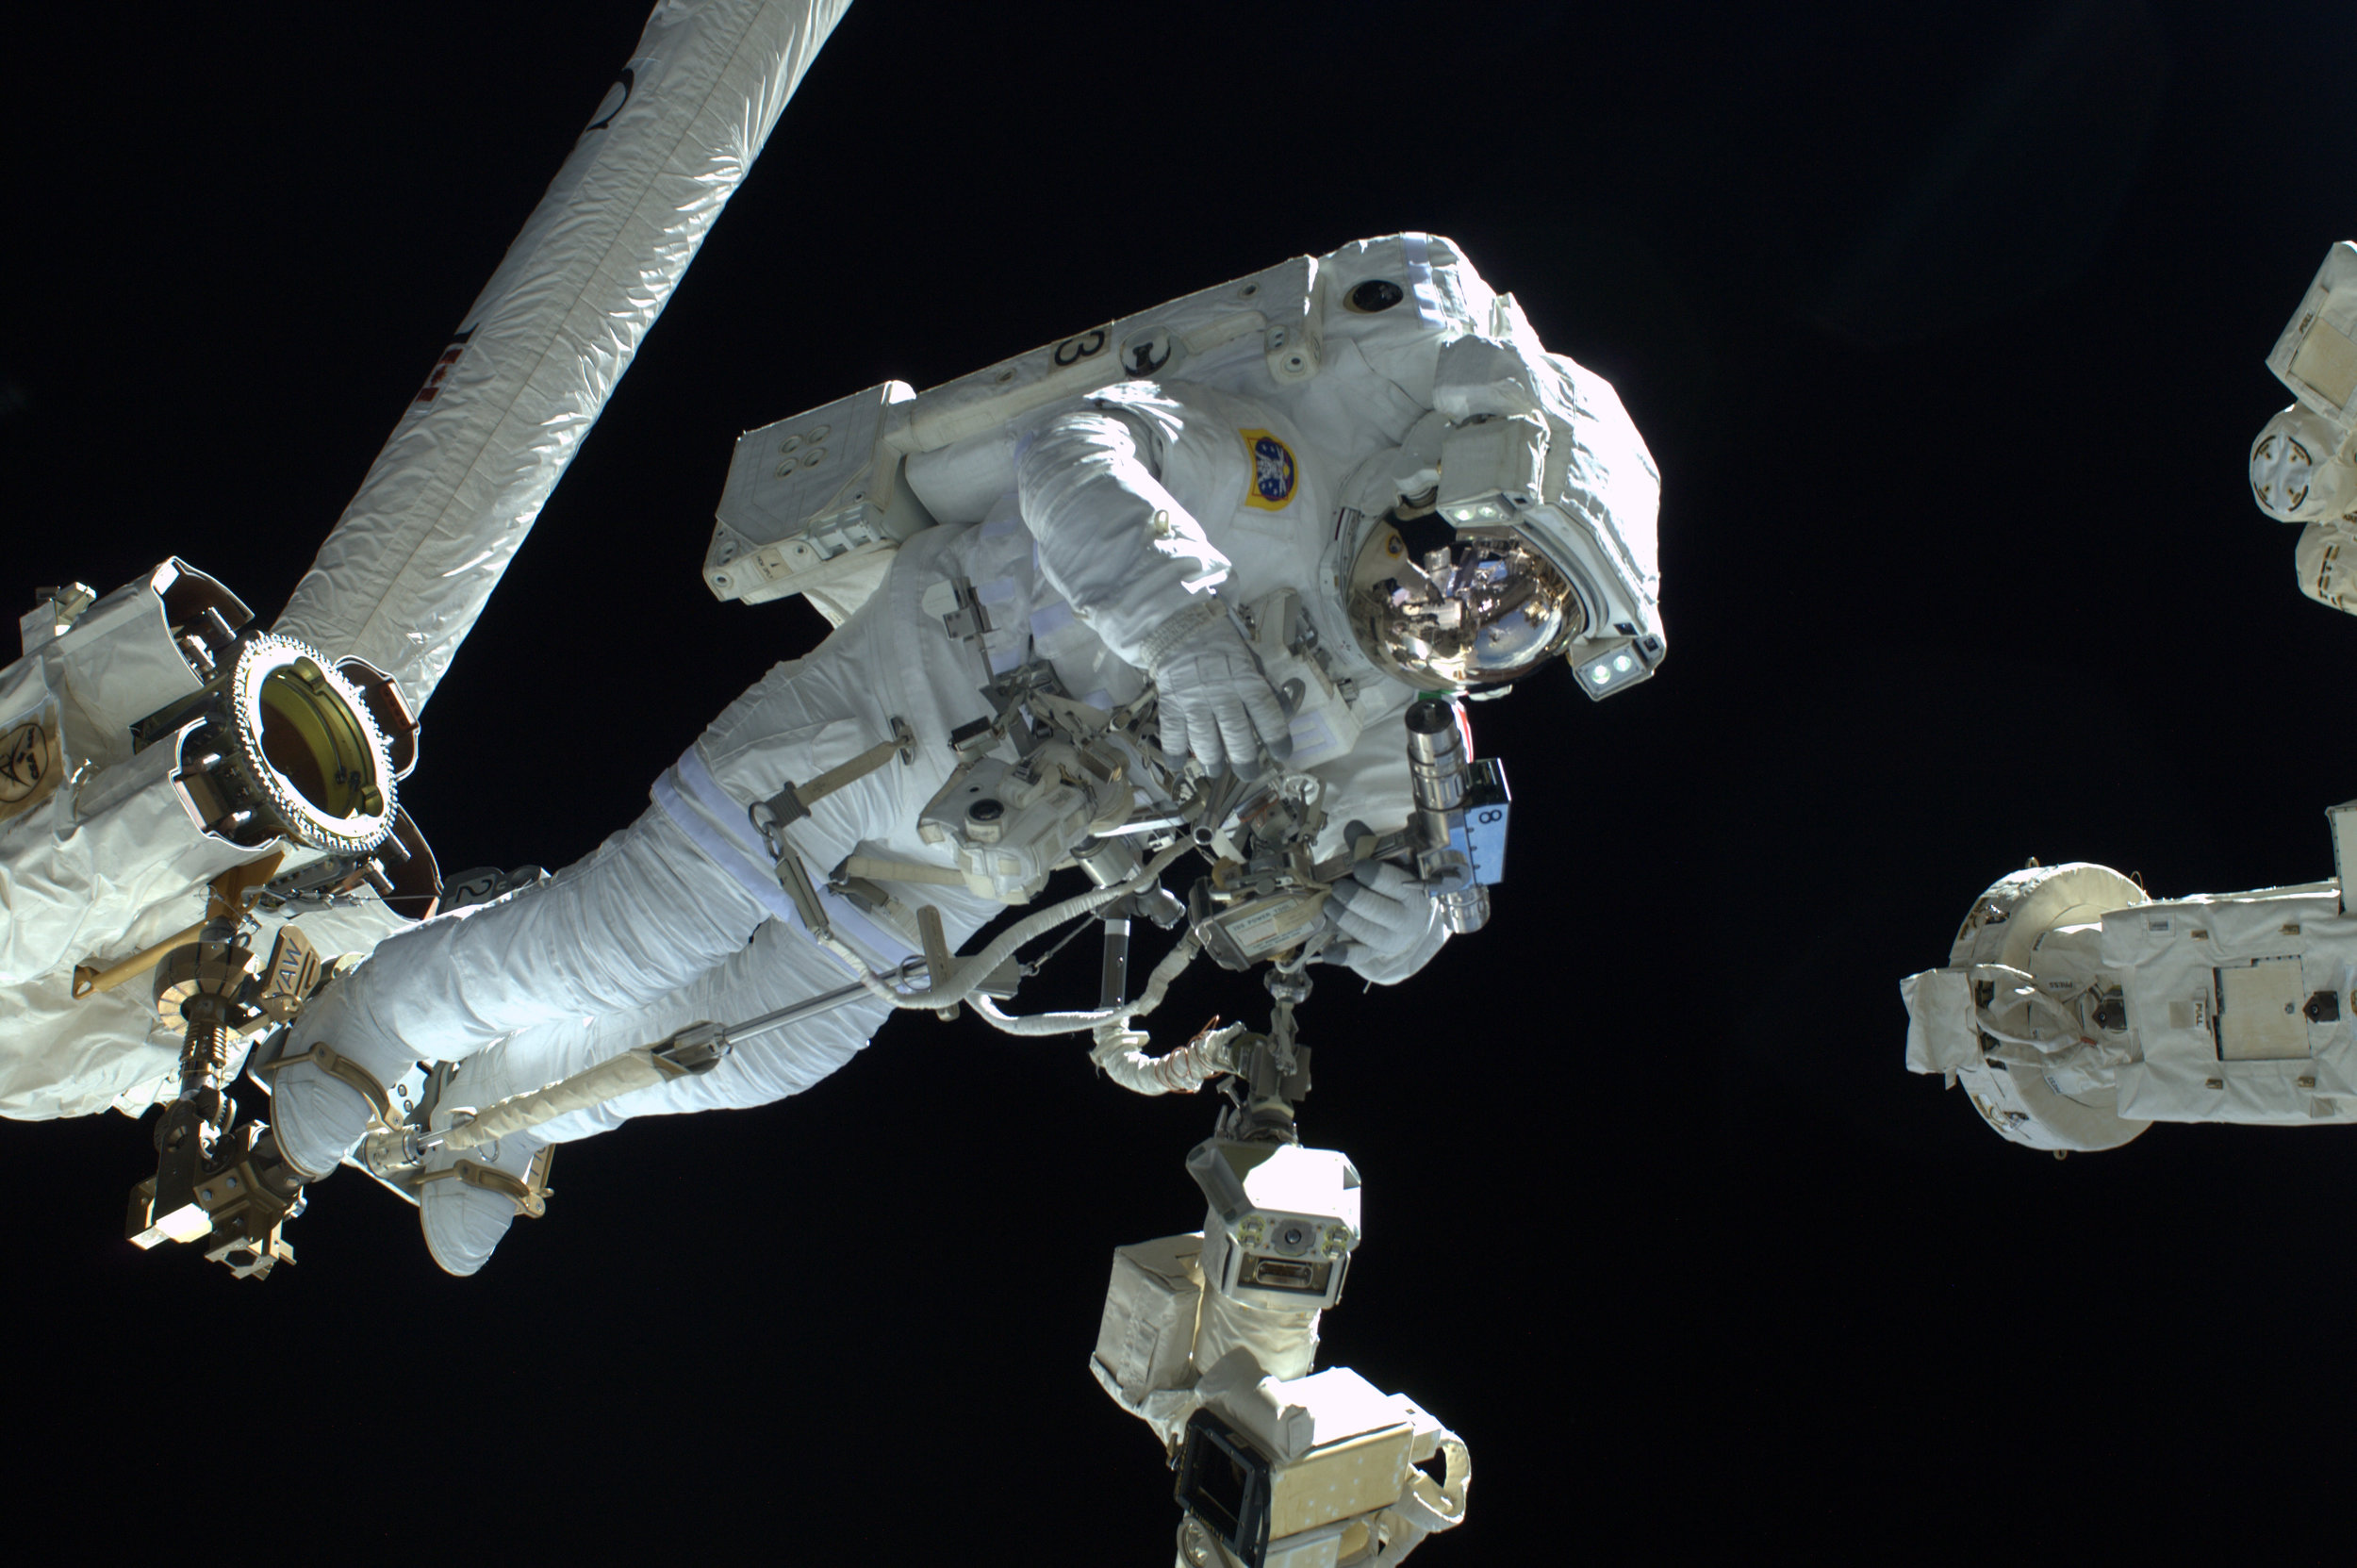 ESA astronaut Luca Parmitano during his first spacewalk for the Volare mission on the International Space Station, 9 July 2013.  Copyright ESA/NASA